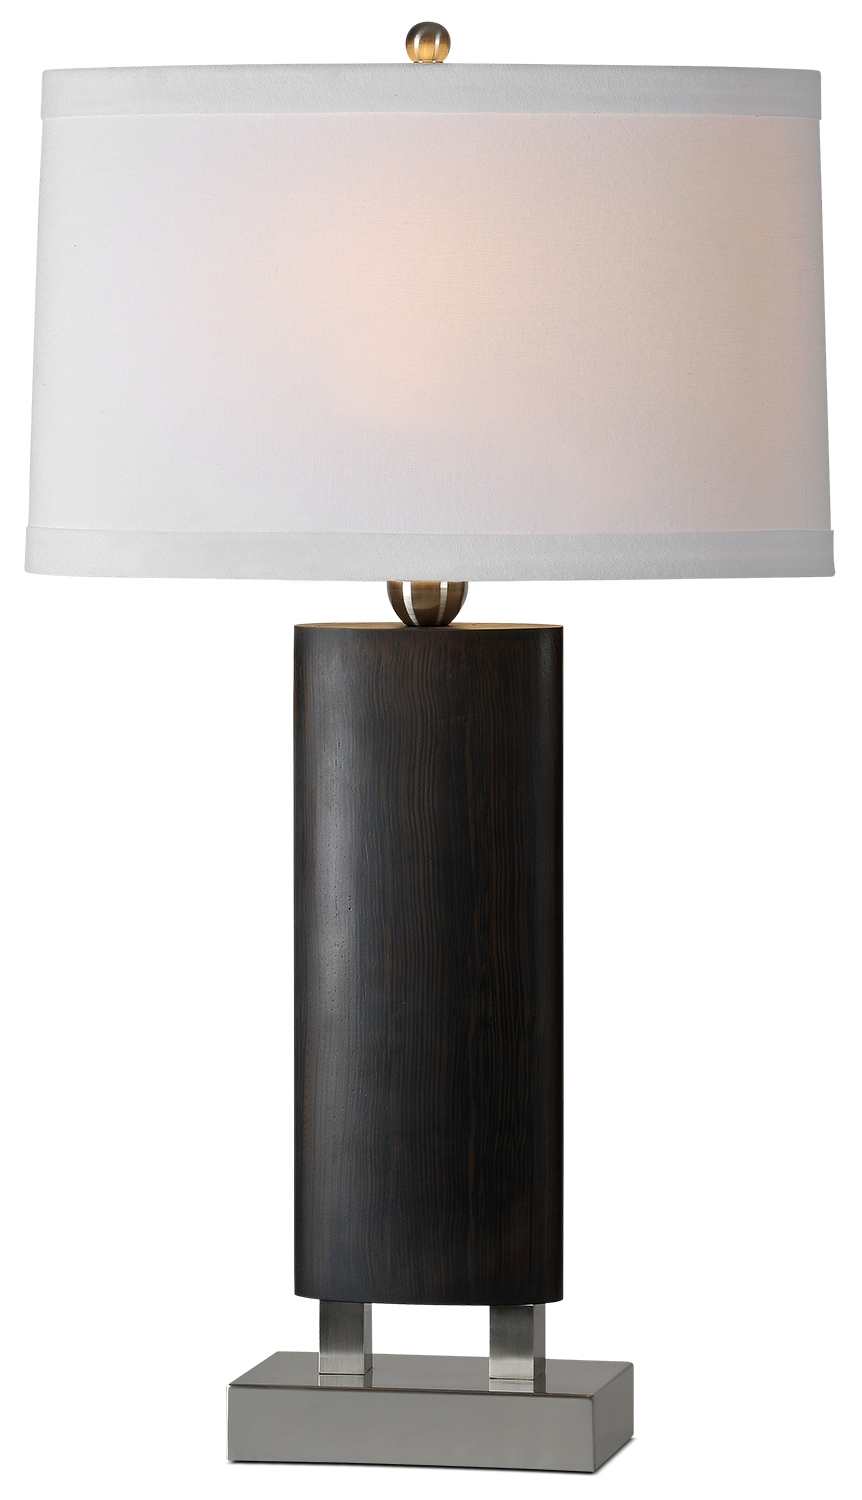 "Lincoln 29.5"" Table Lamp - Walnut"